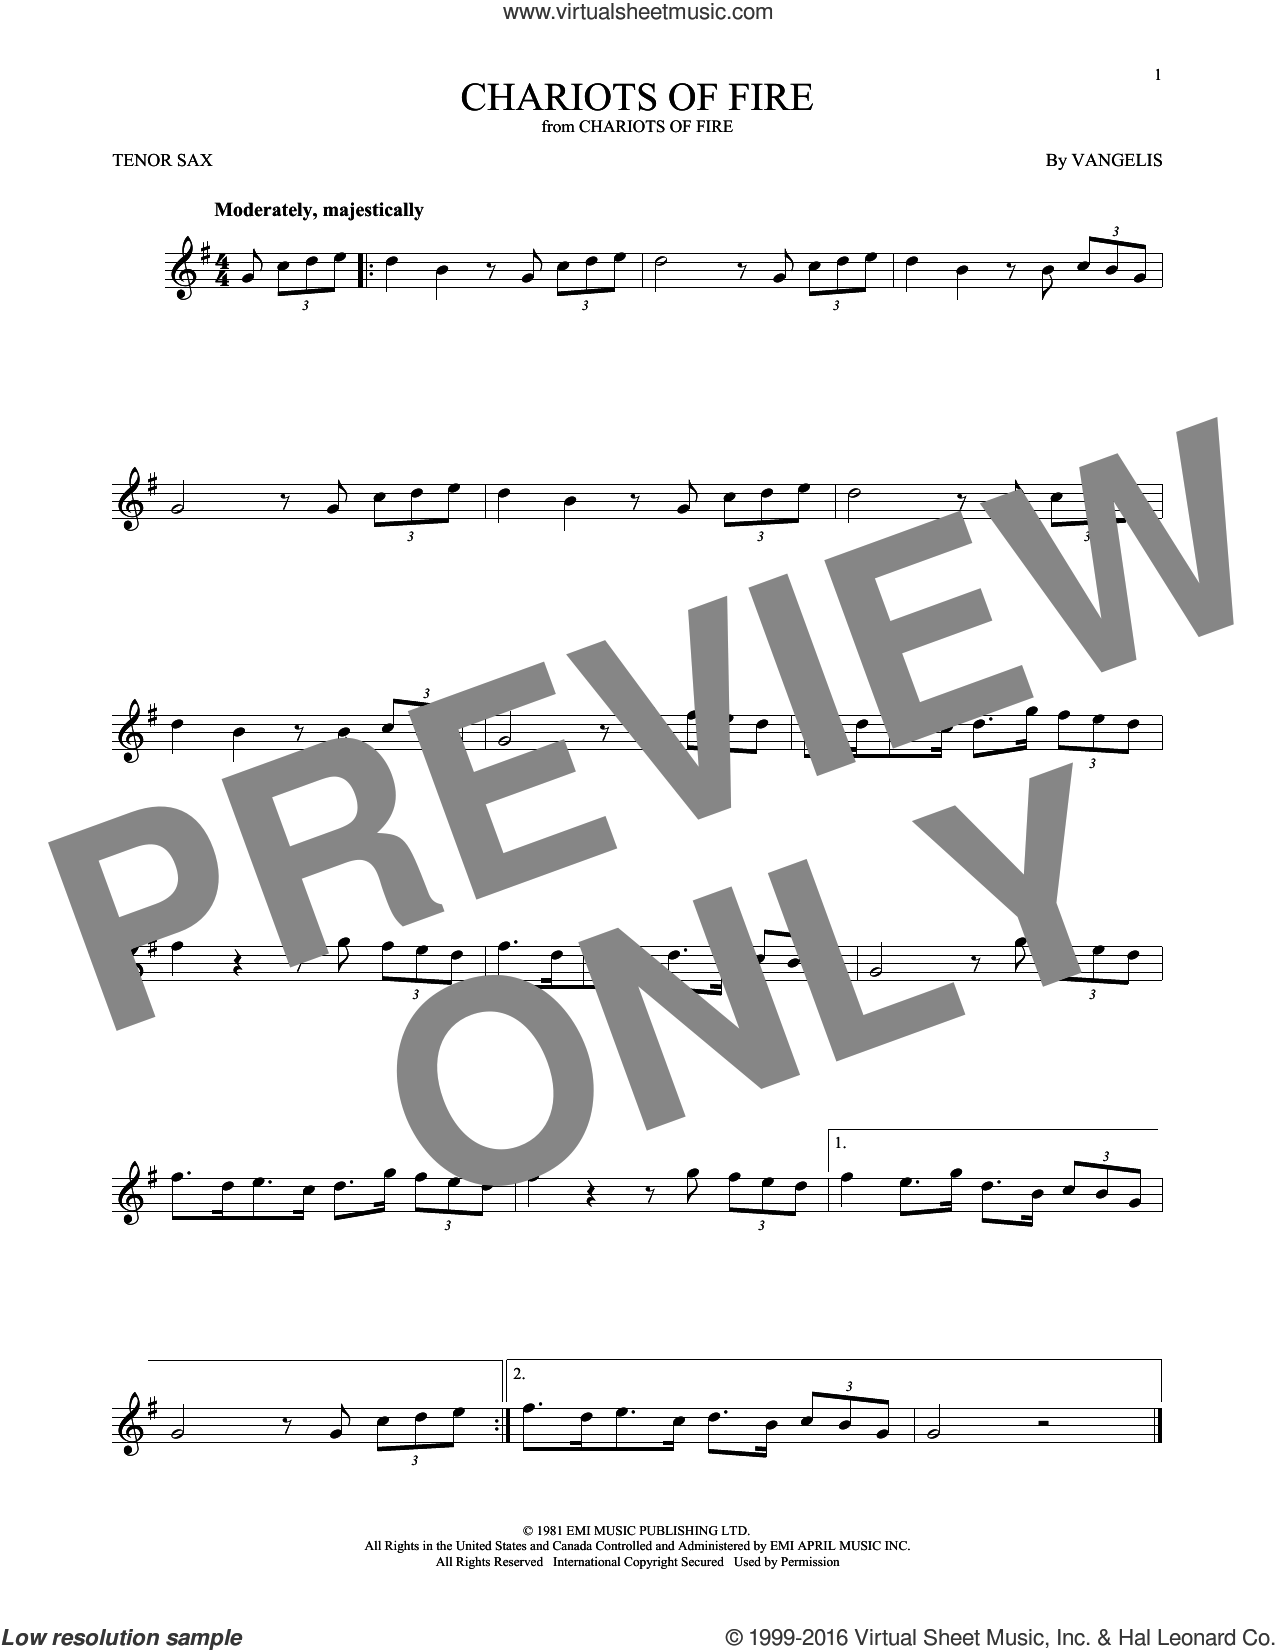 Chariots Of Fire sheet music for tenor saxophone solo by Vangelis, intermediate skill level